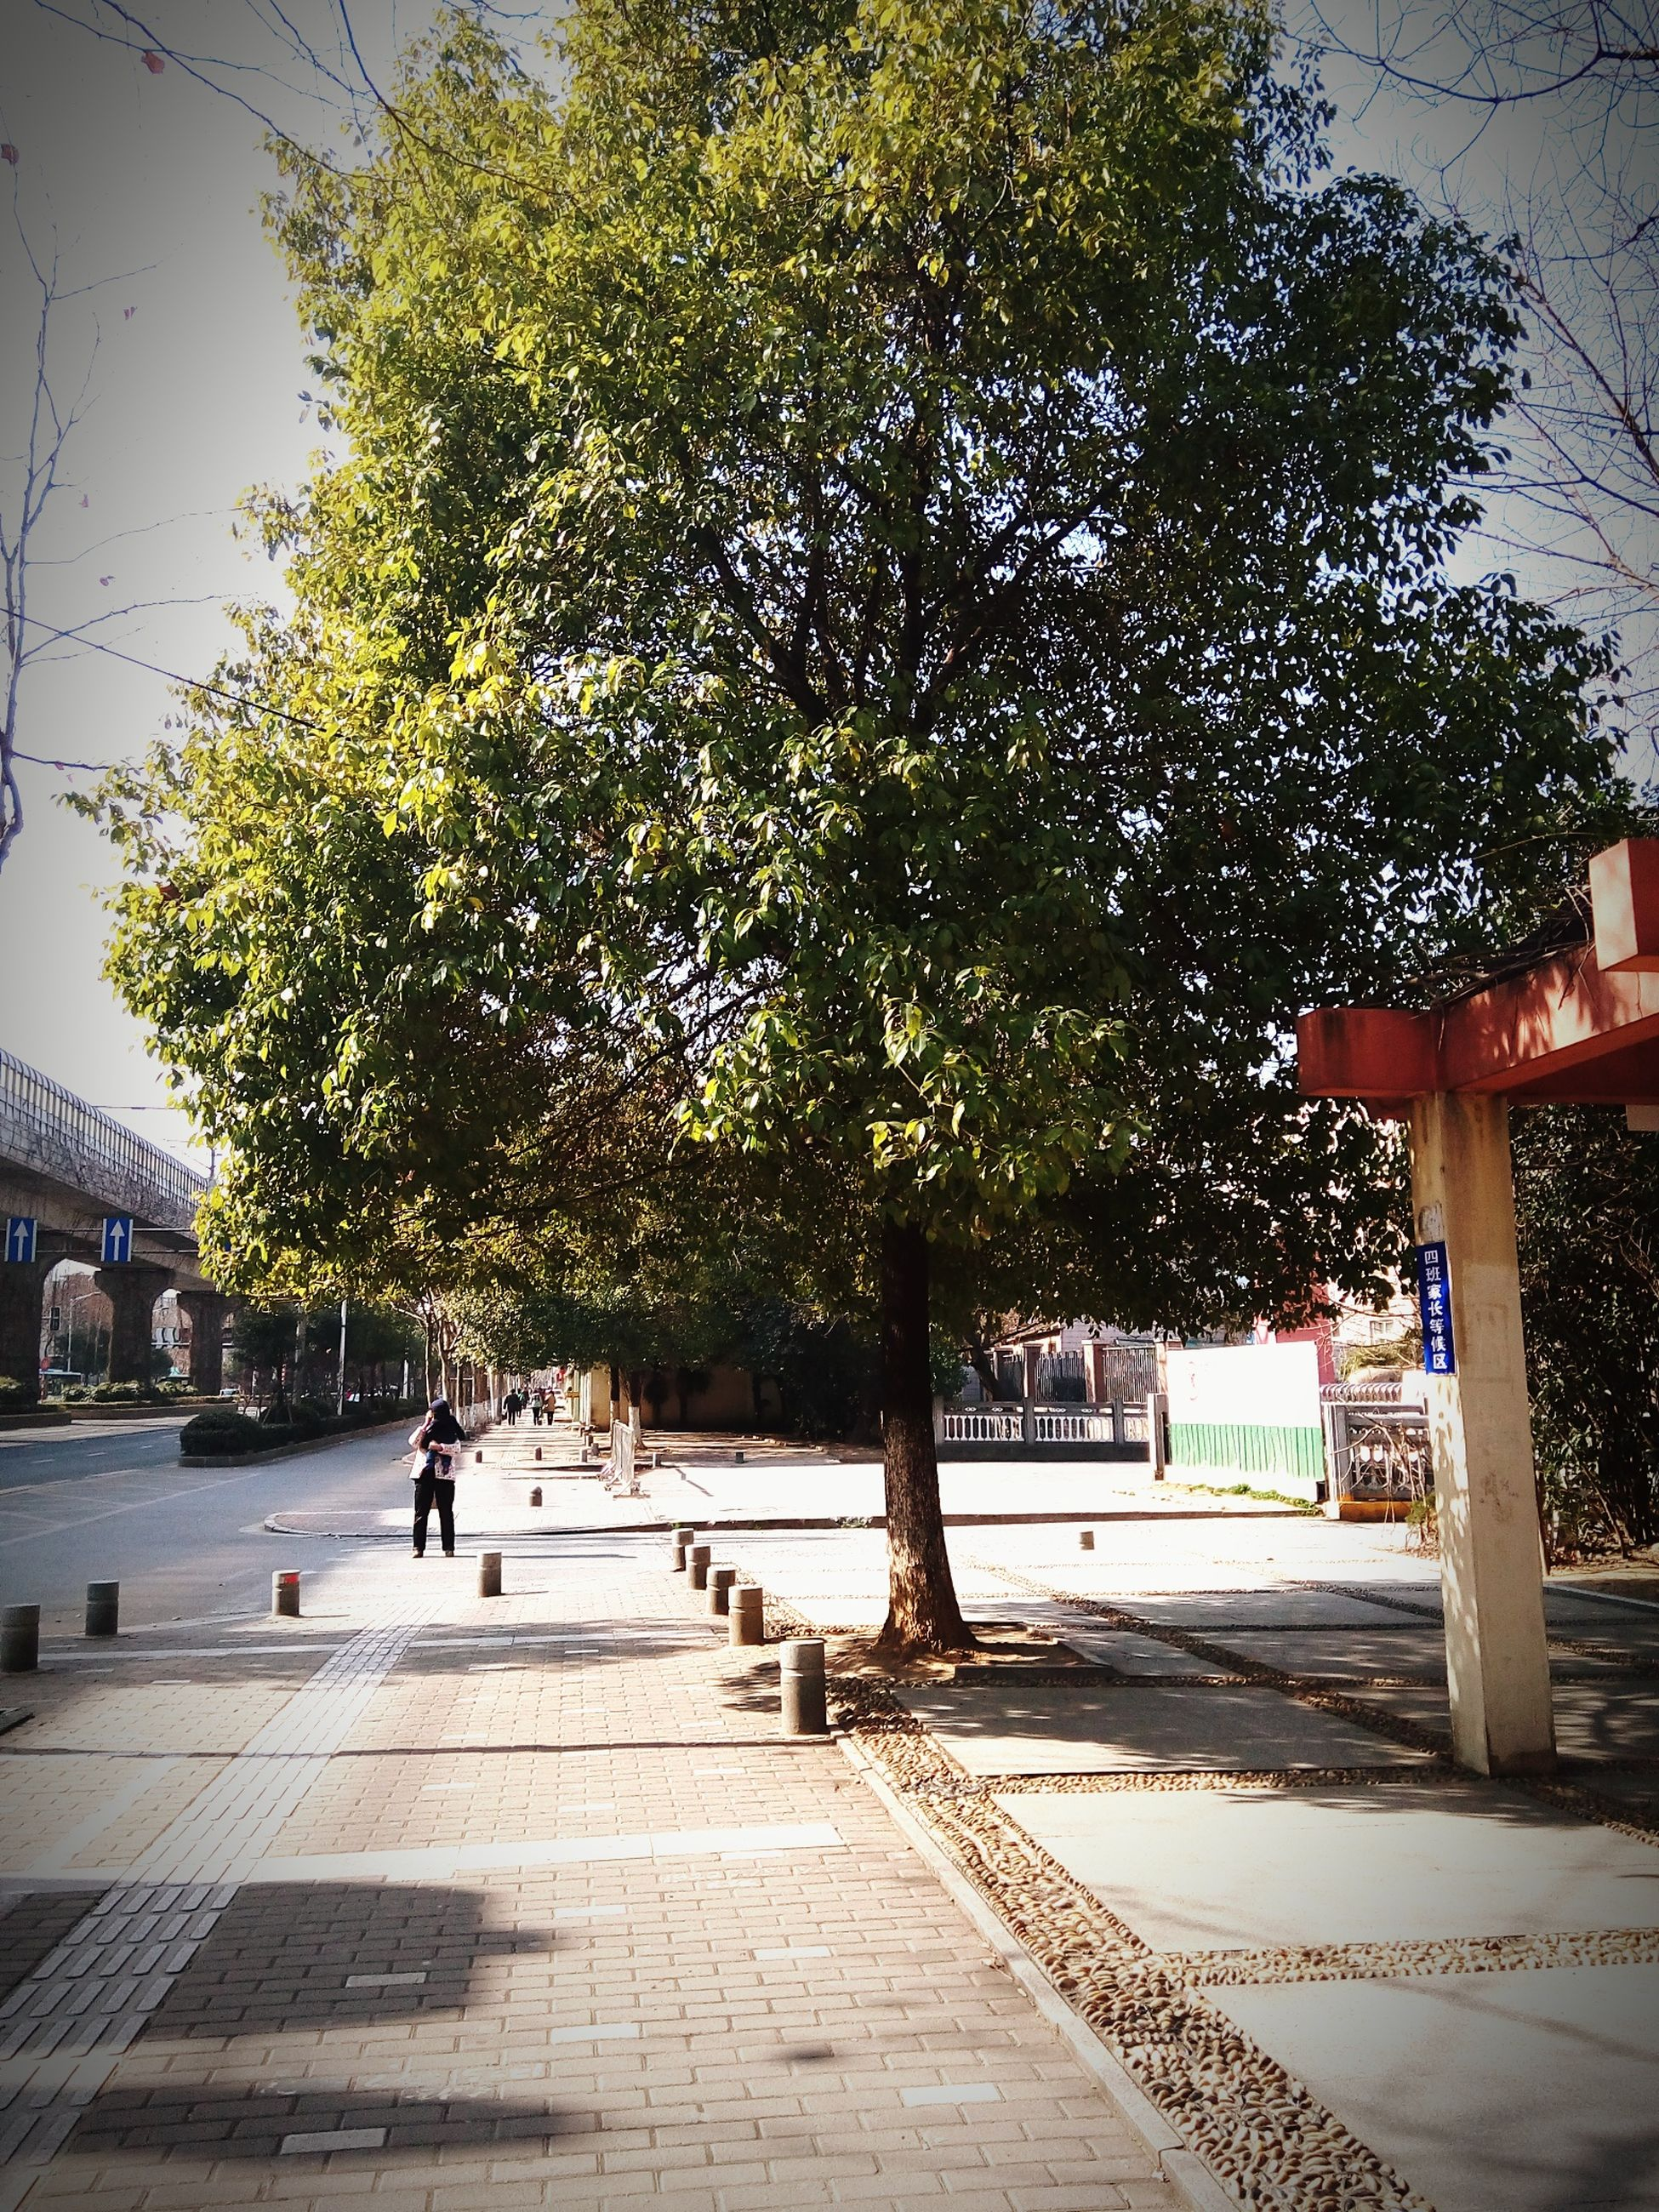 tree, growth, incidental people, footpath, bench, sidewalk, the way forward, built structure, sunlight, park - man made space, shadow, street, city, building exterior, architecture, outdoors, day, person, men